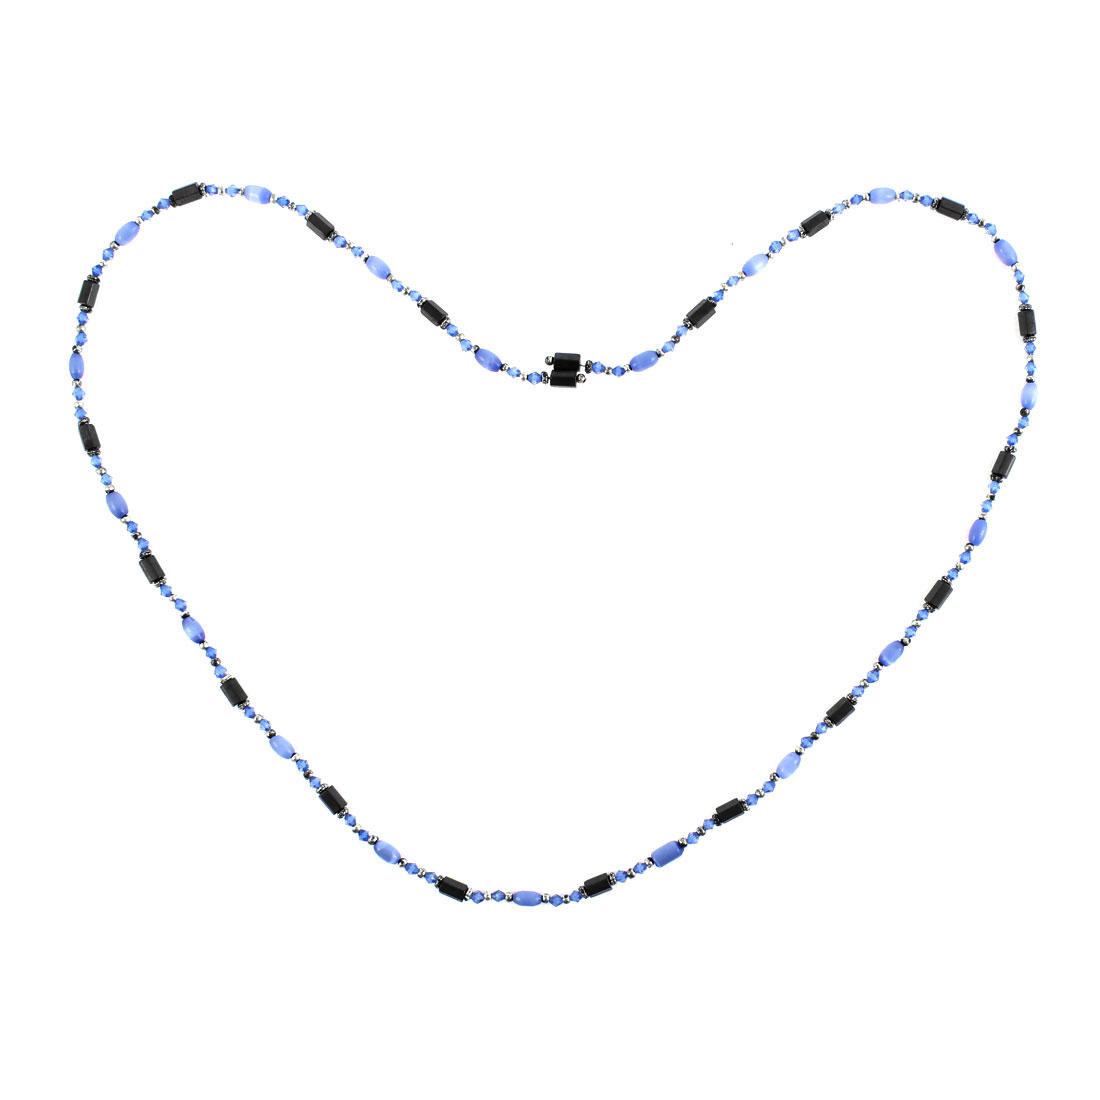 Women Magnet Clasp Hematite Magnetic Bracelet Choker Necklace Indigo Blue Black